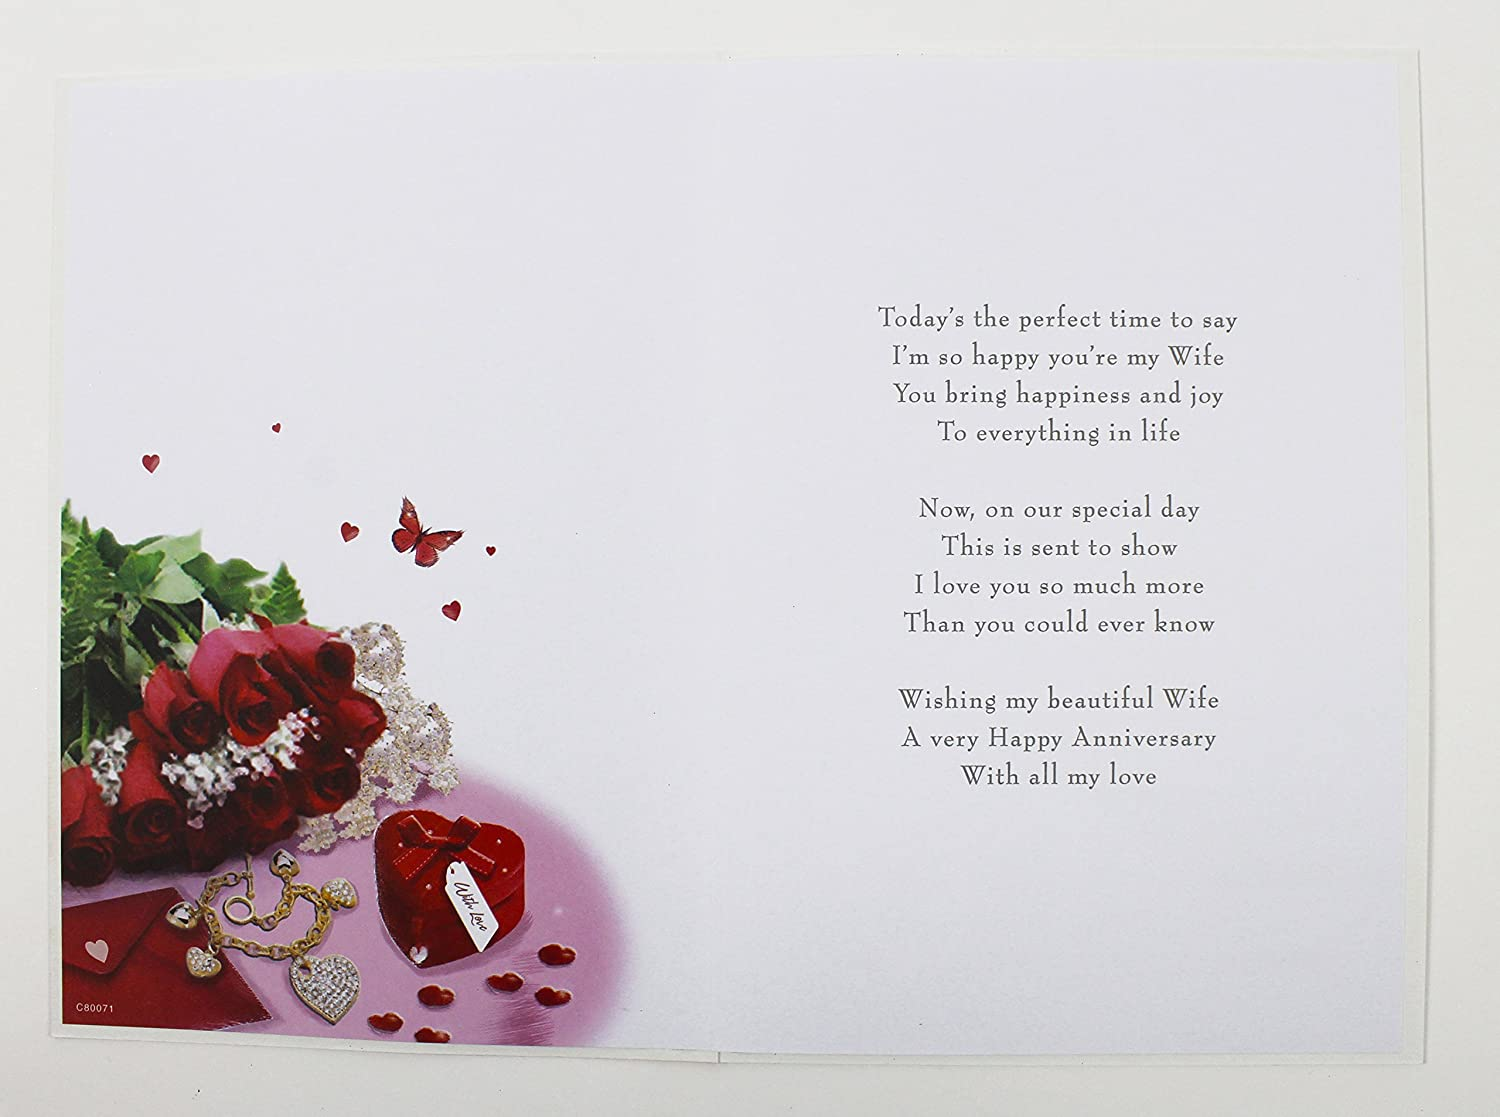 To my wife our wedding anniversary card love for her large quality